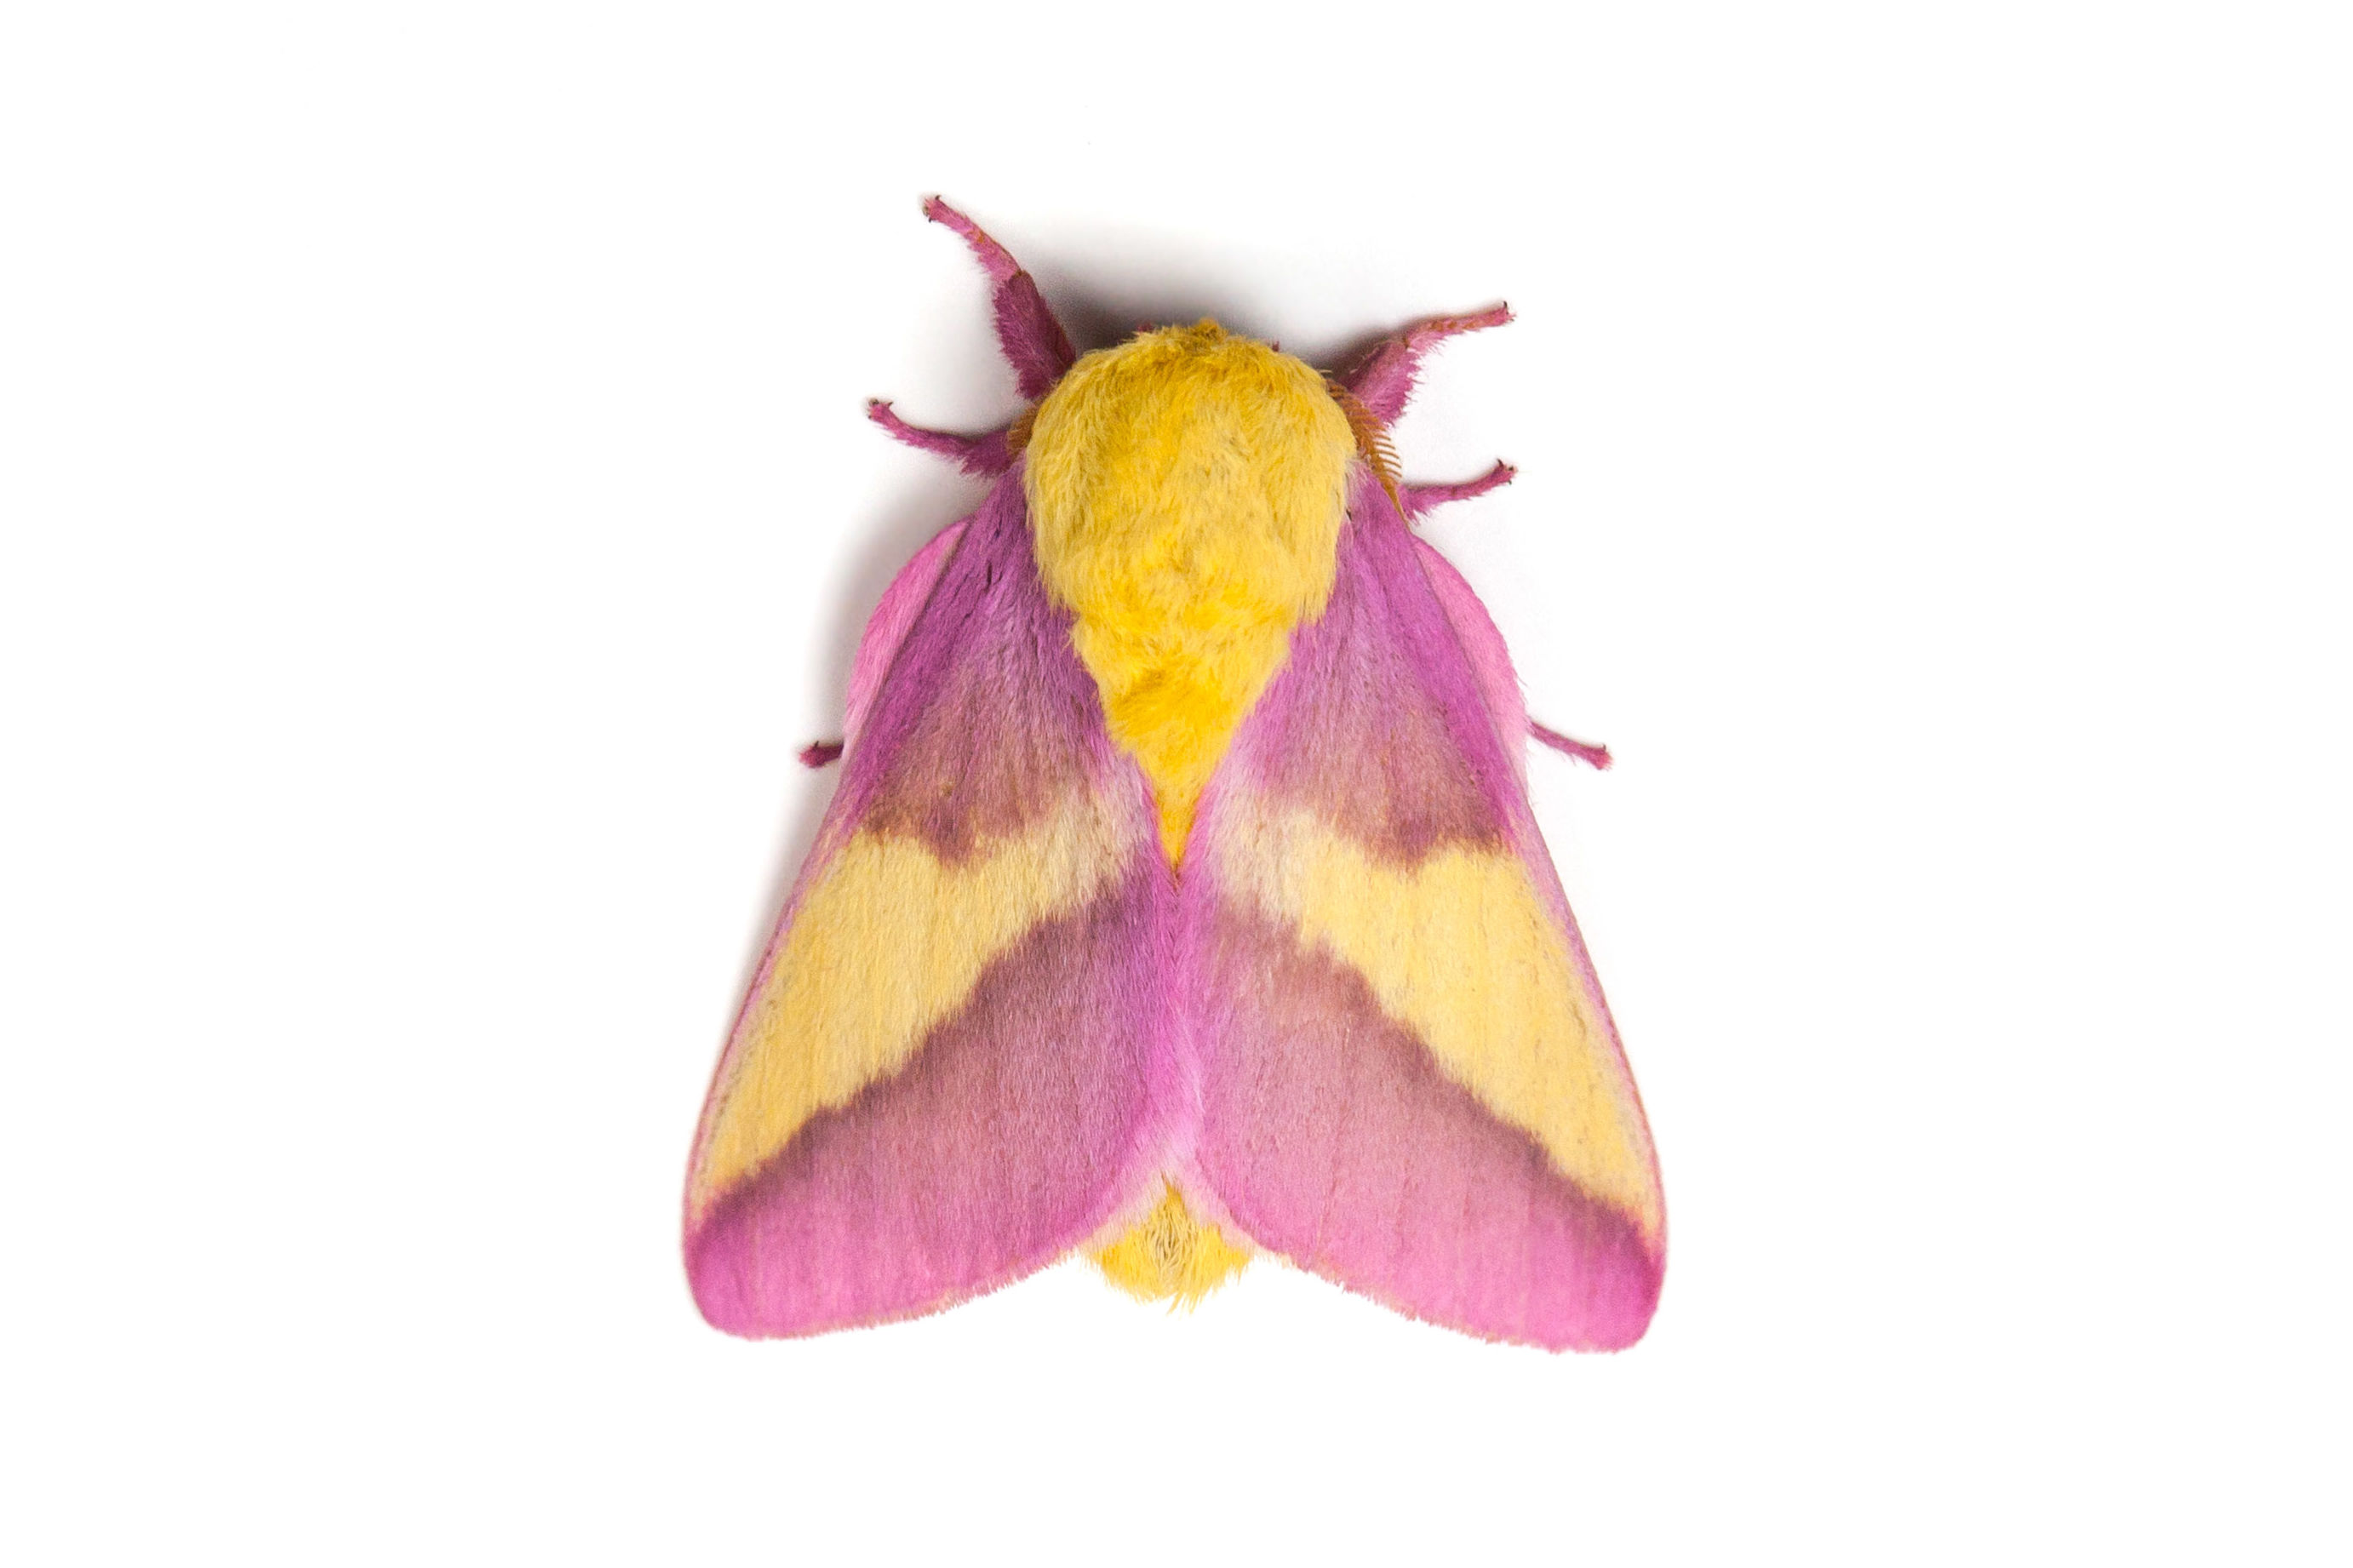 The Pink-and-Yellow Rosy Maple Moth Is an Eye-Catching Garden Visitor